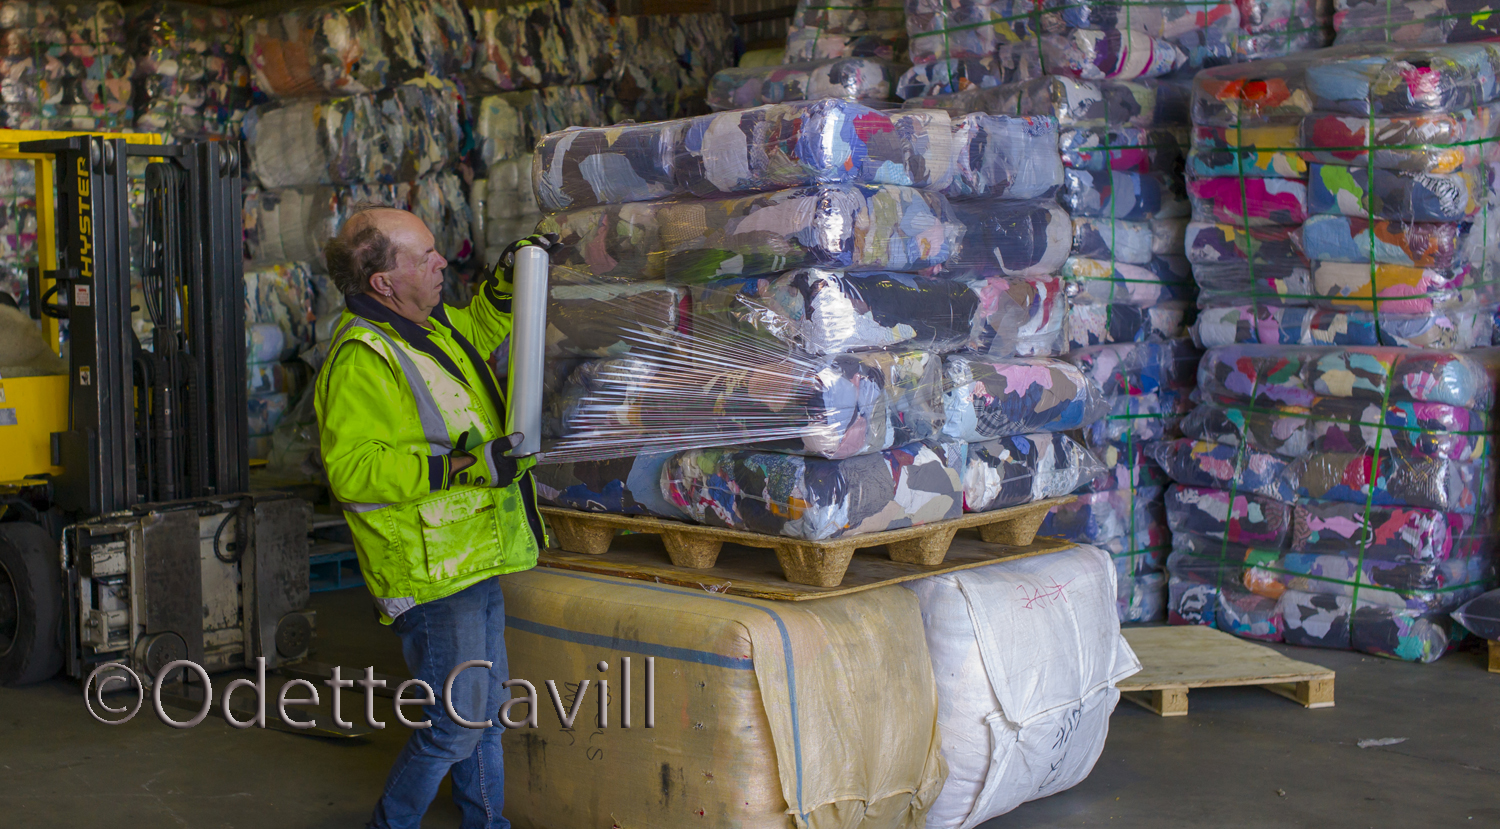 The Busines of Recycling - The warehouse supervisor is preparing